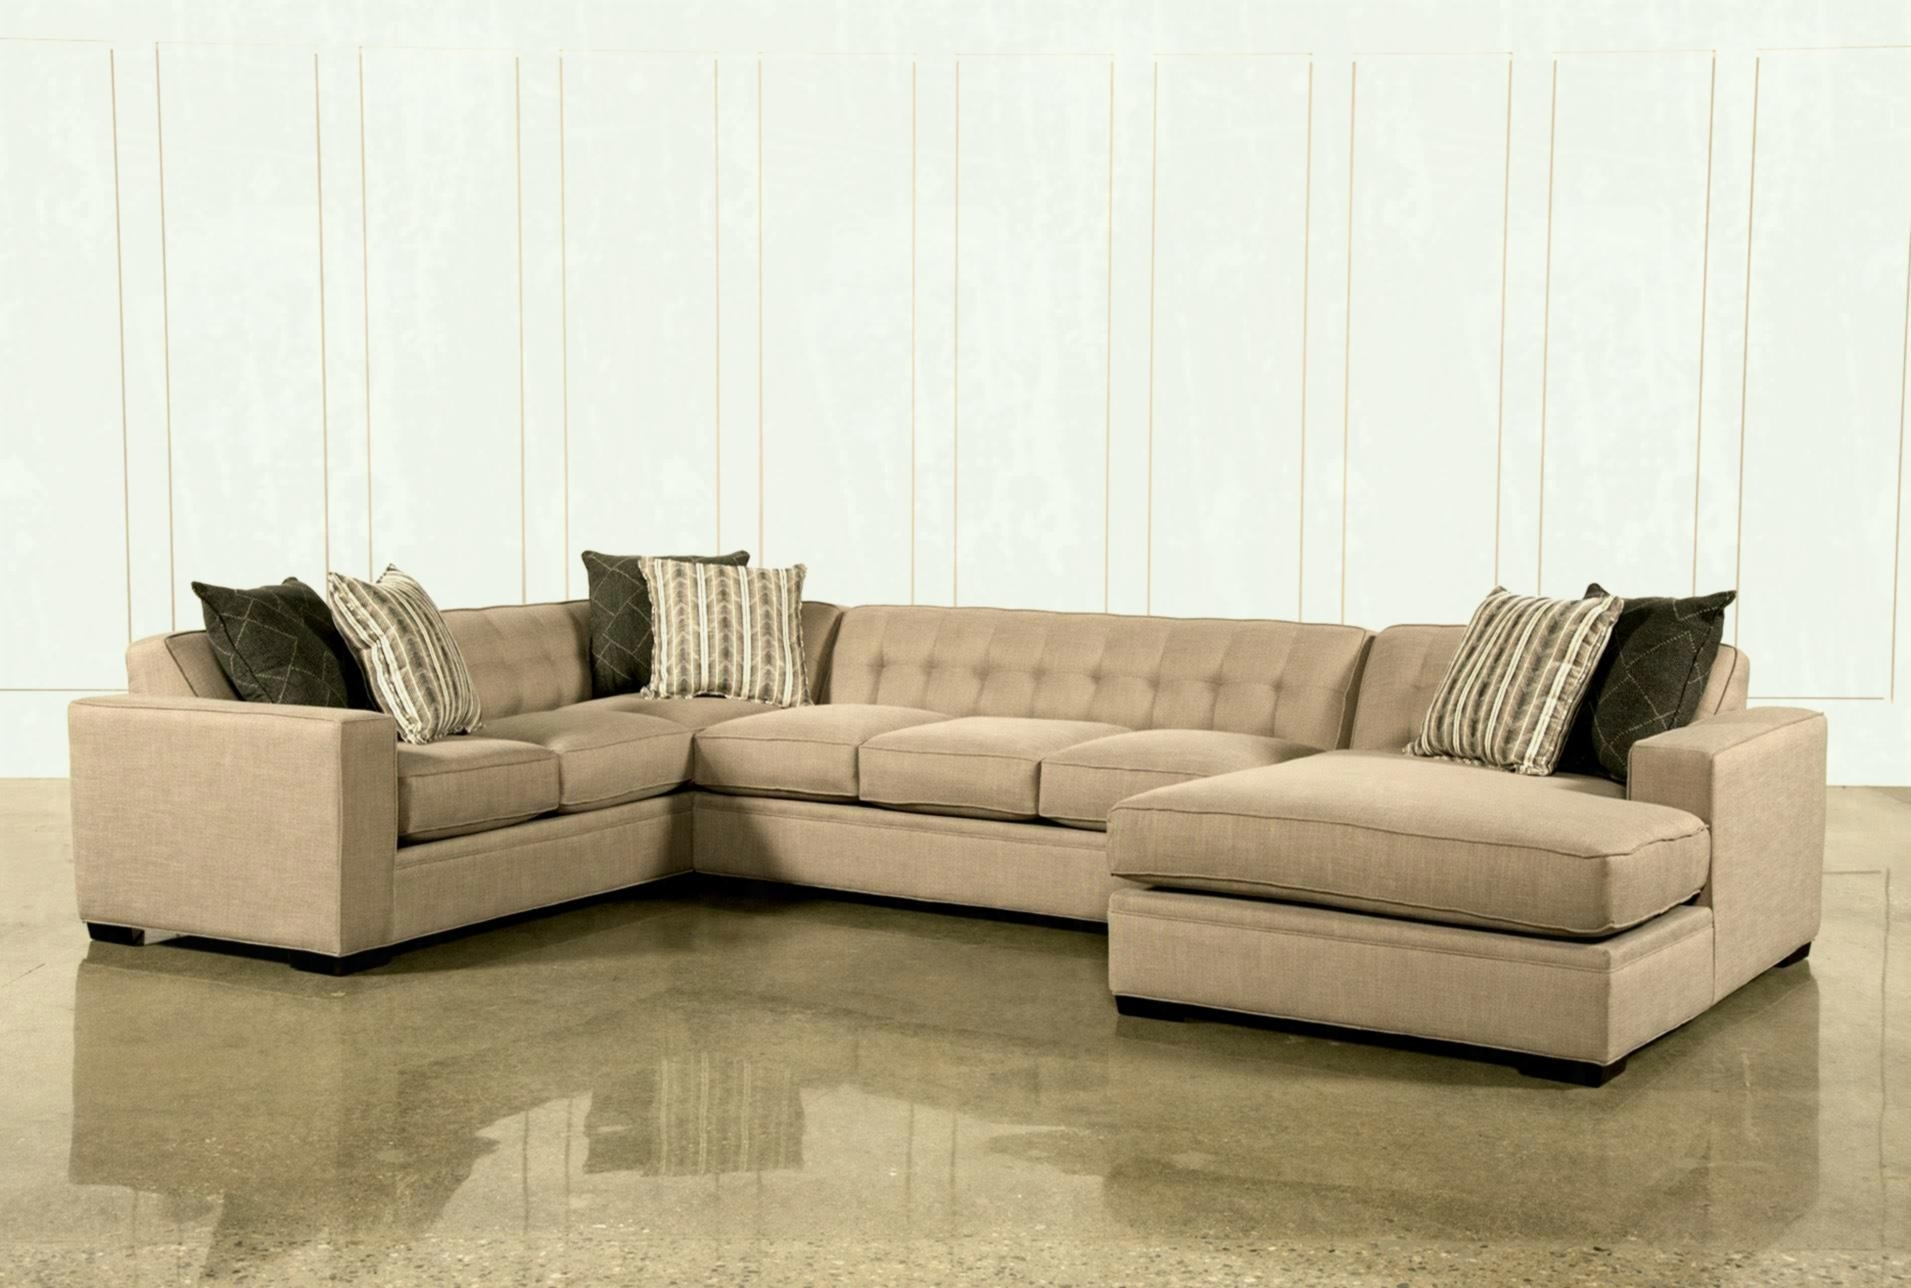 Living Spaces Sectional - Tidex for Aspen 2 Piece Sleeper Sectionals With Laf Chaise (Image 18 of 30)